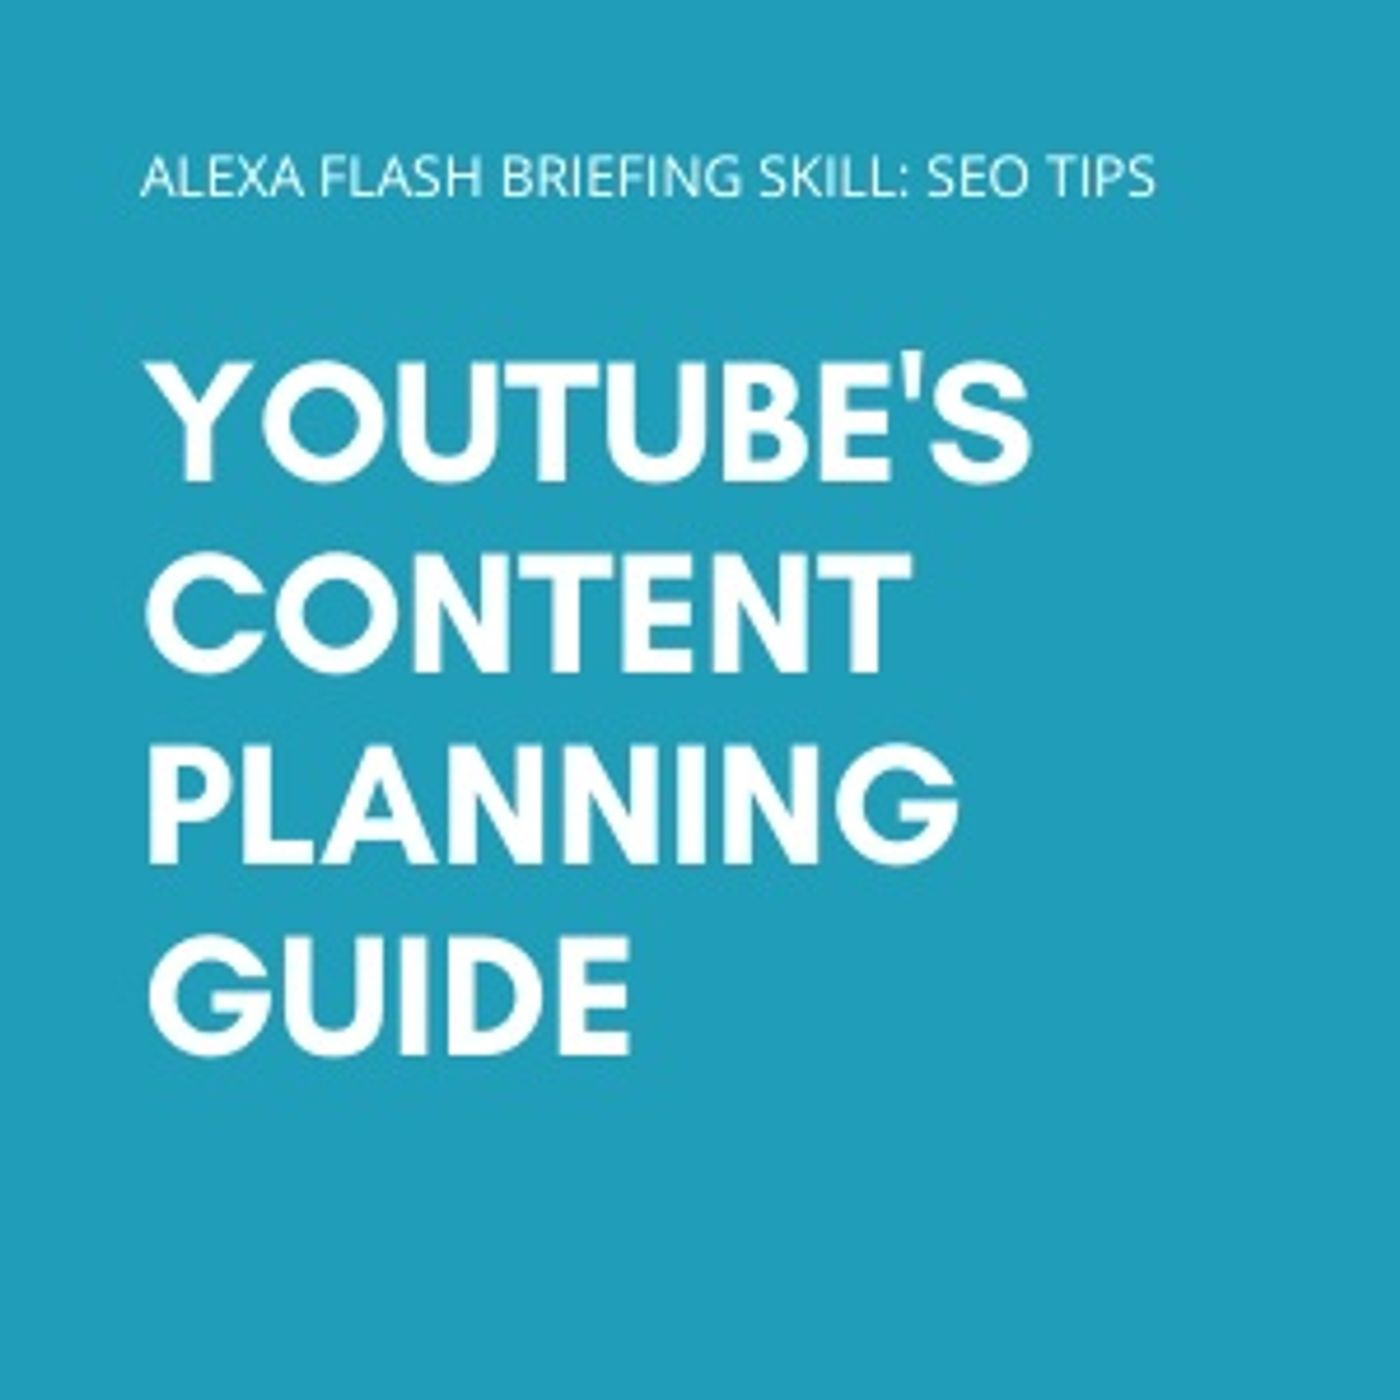 YouTube's content planning guide